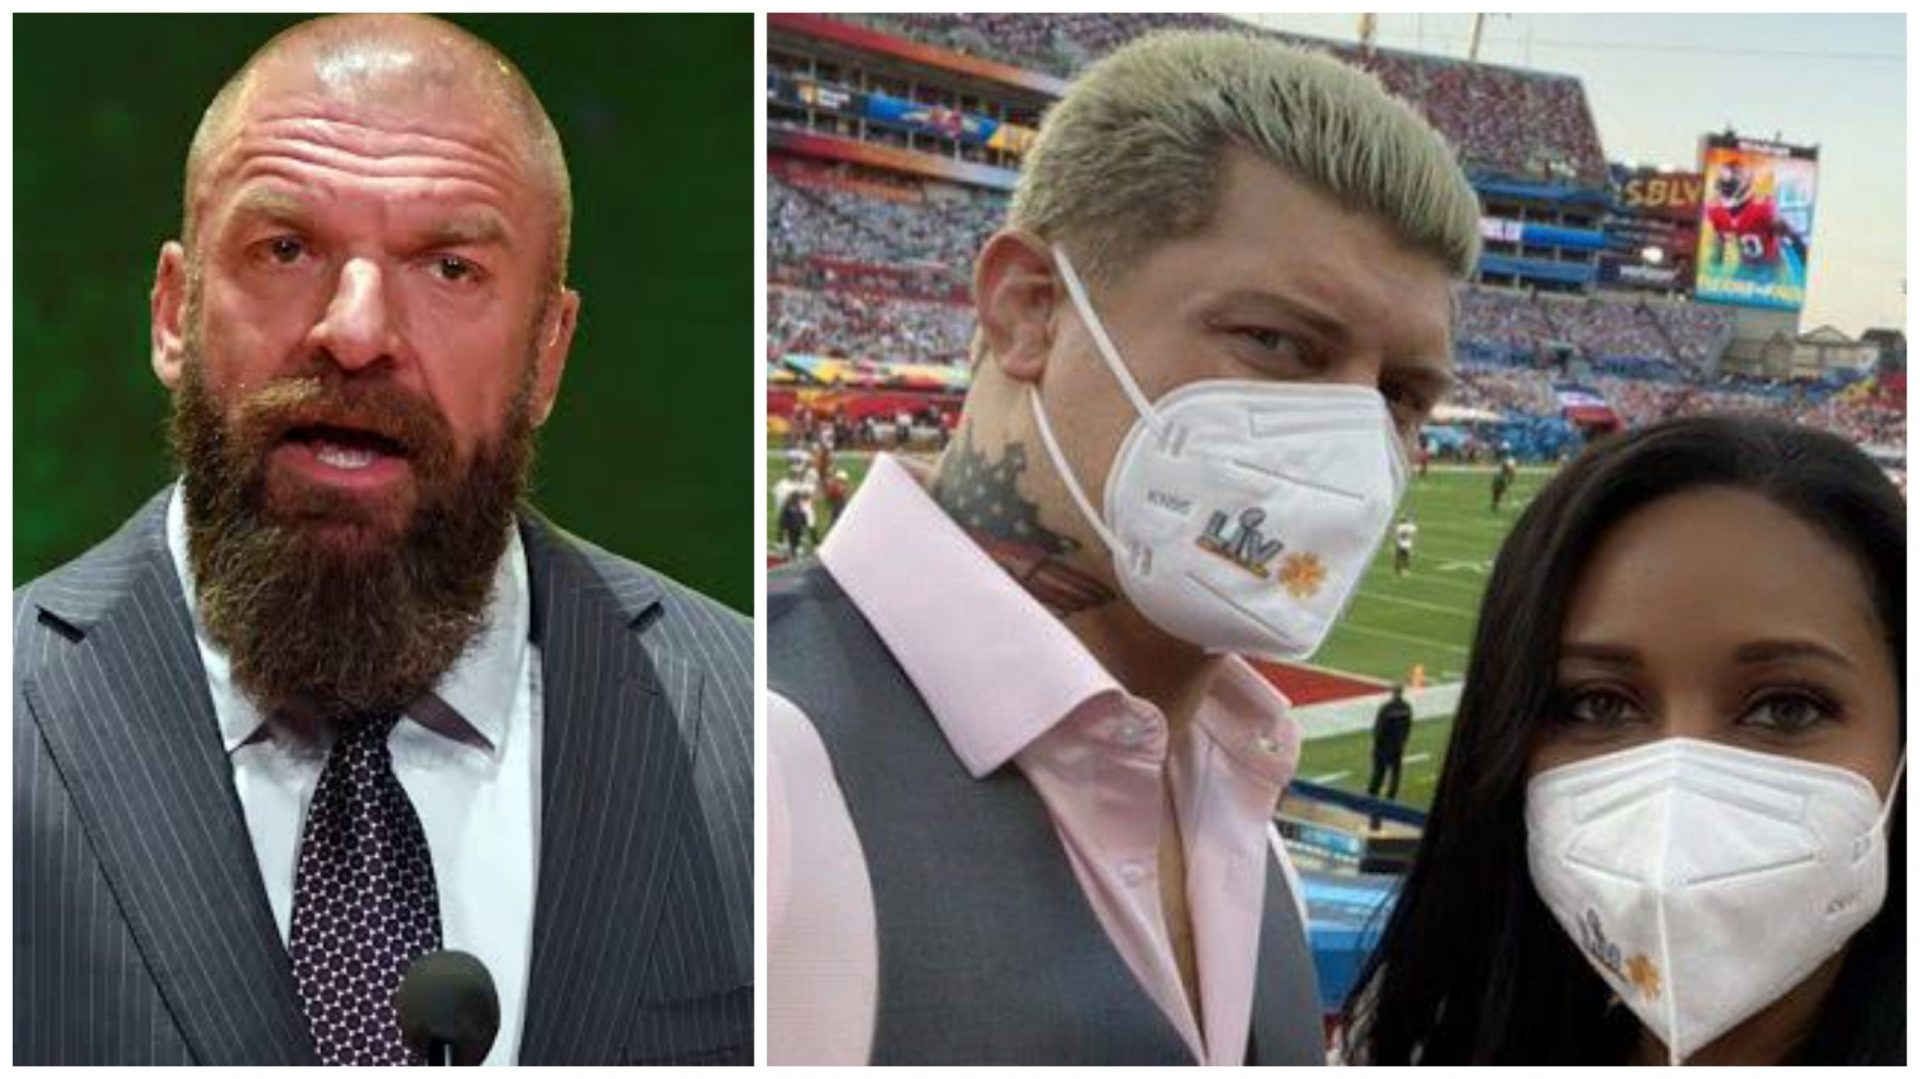 Triple H, Jericho, Cody and Brandi Rhodes amongst Wrestling personalities seen at Super Bowl - THE SPORTS ROOM